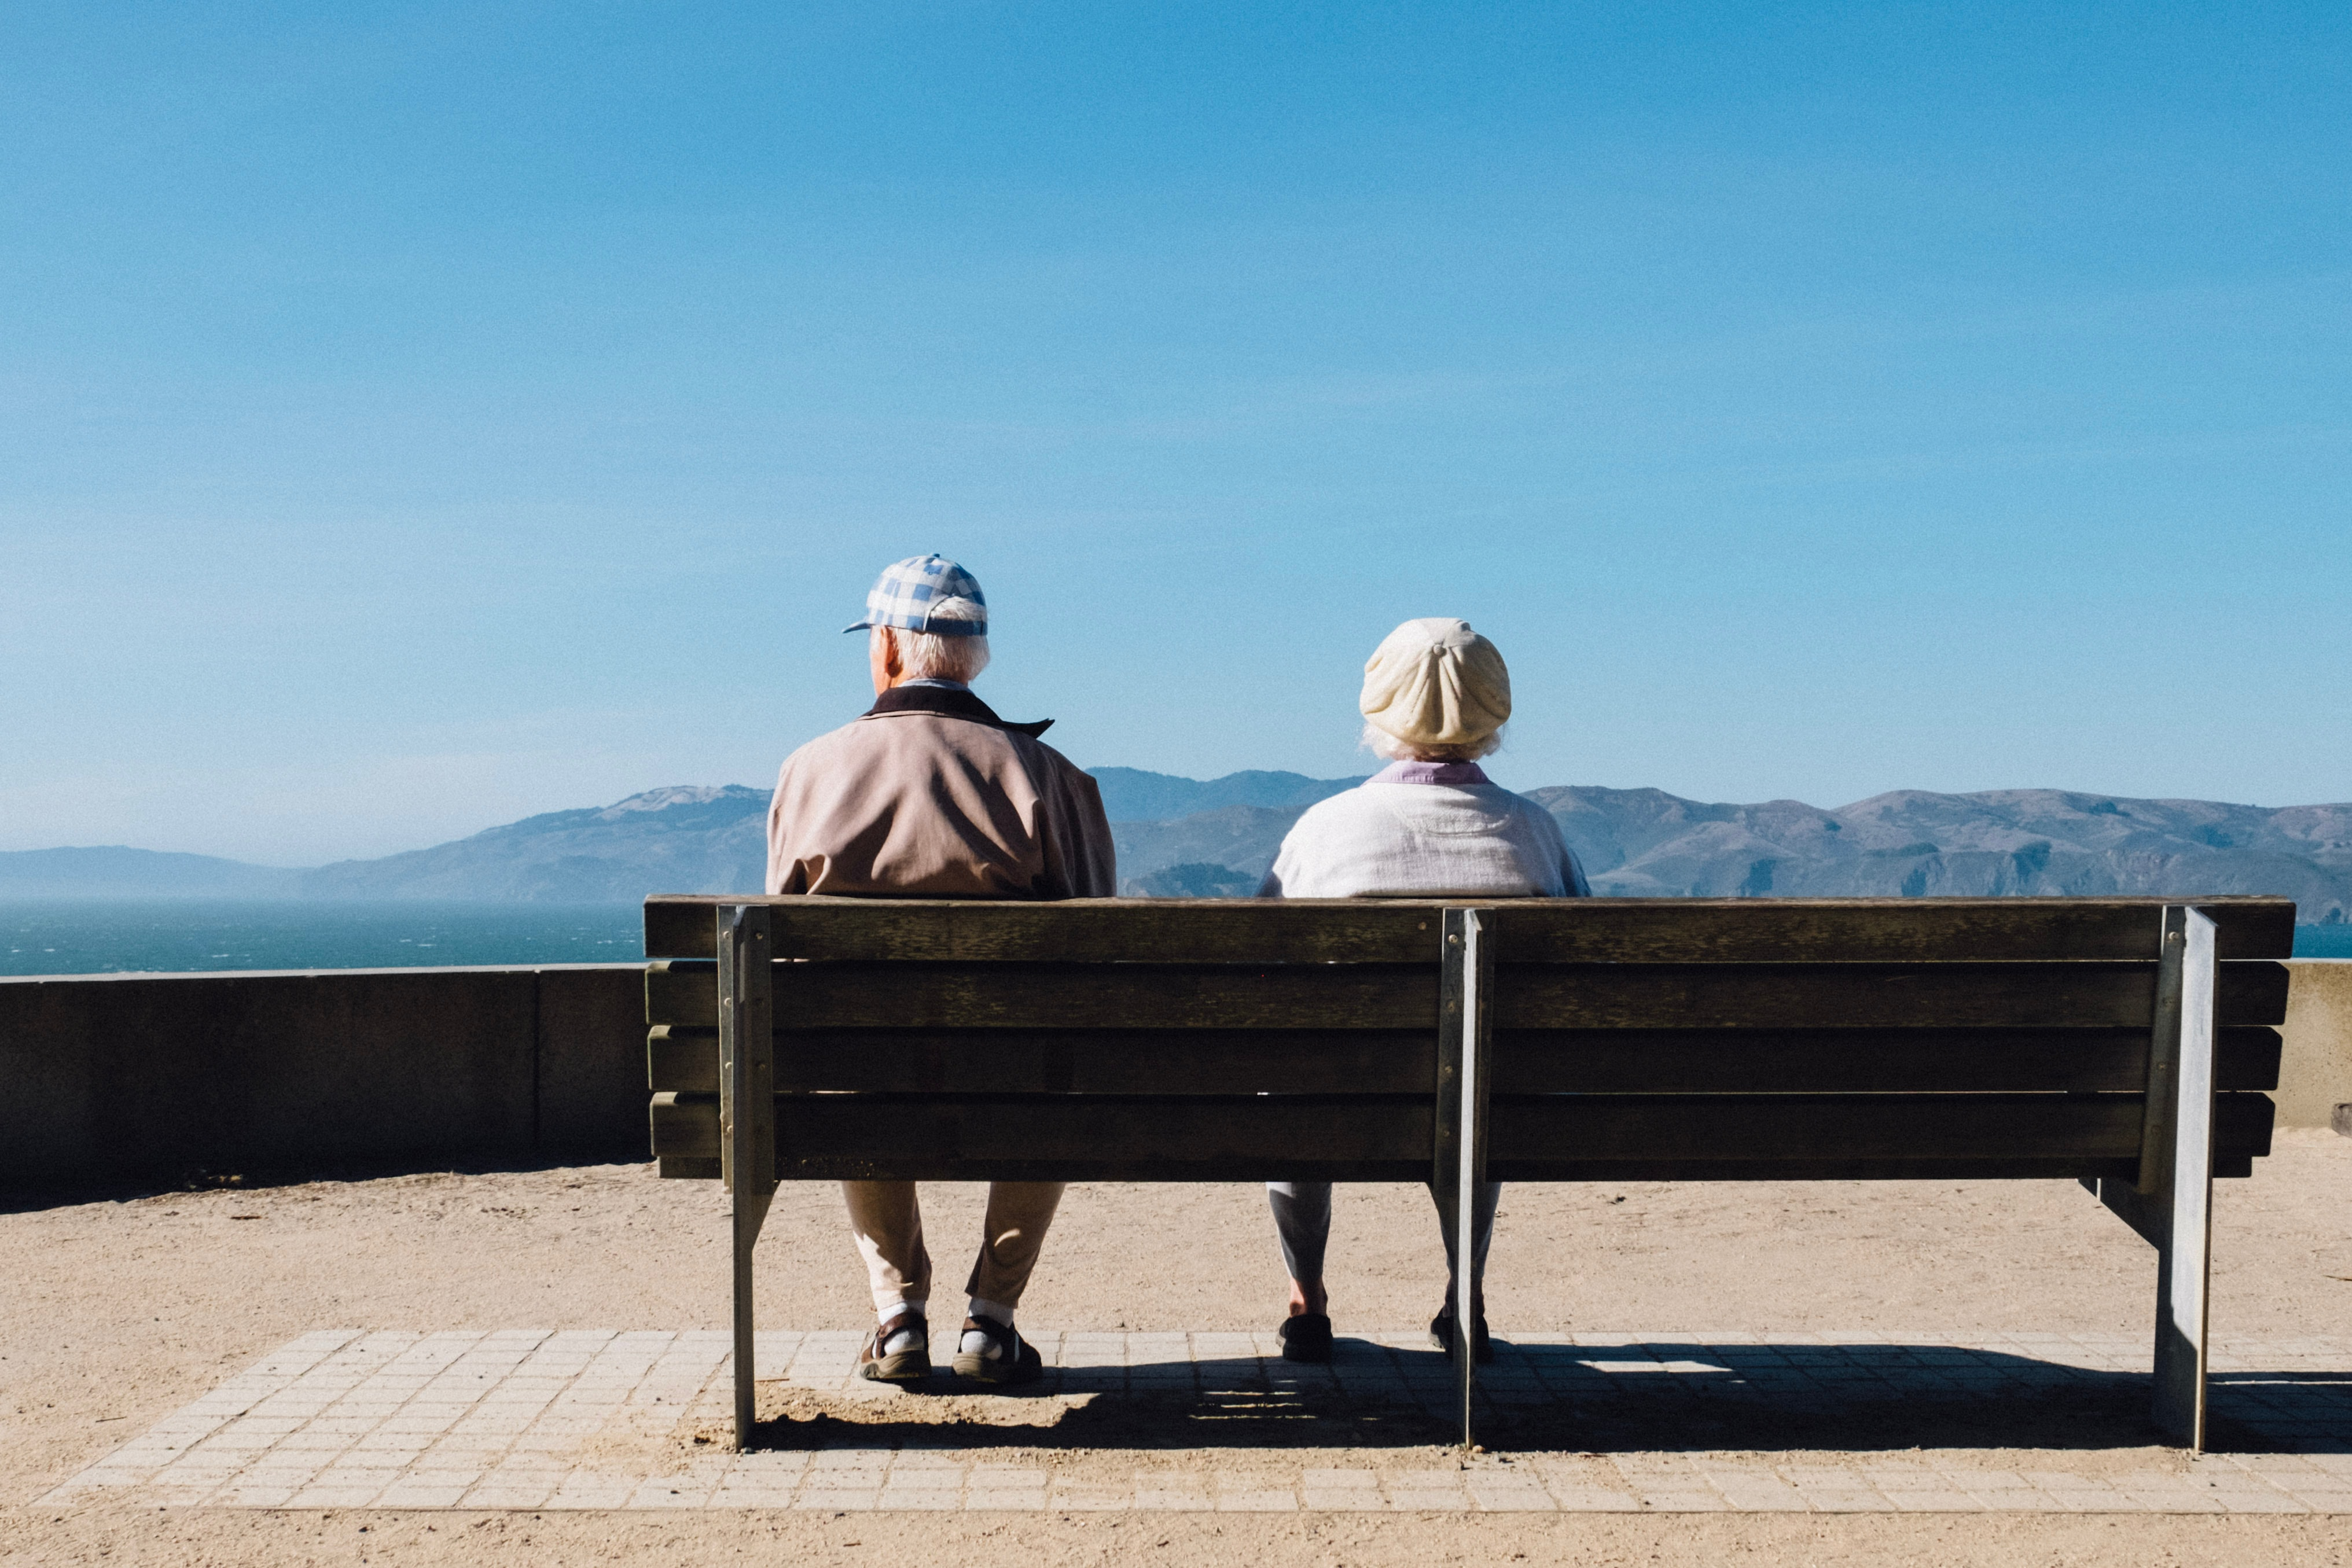 elderly couple sitting on bench with mountain view